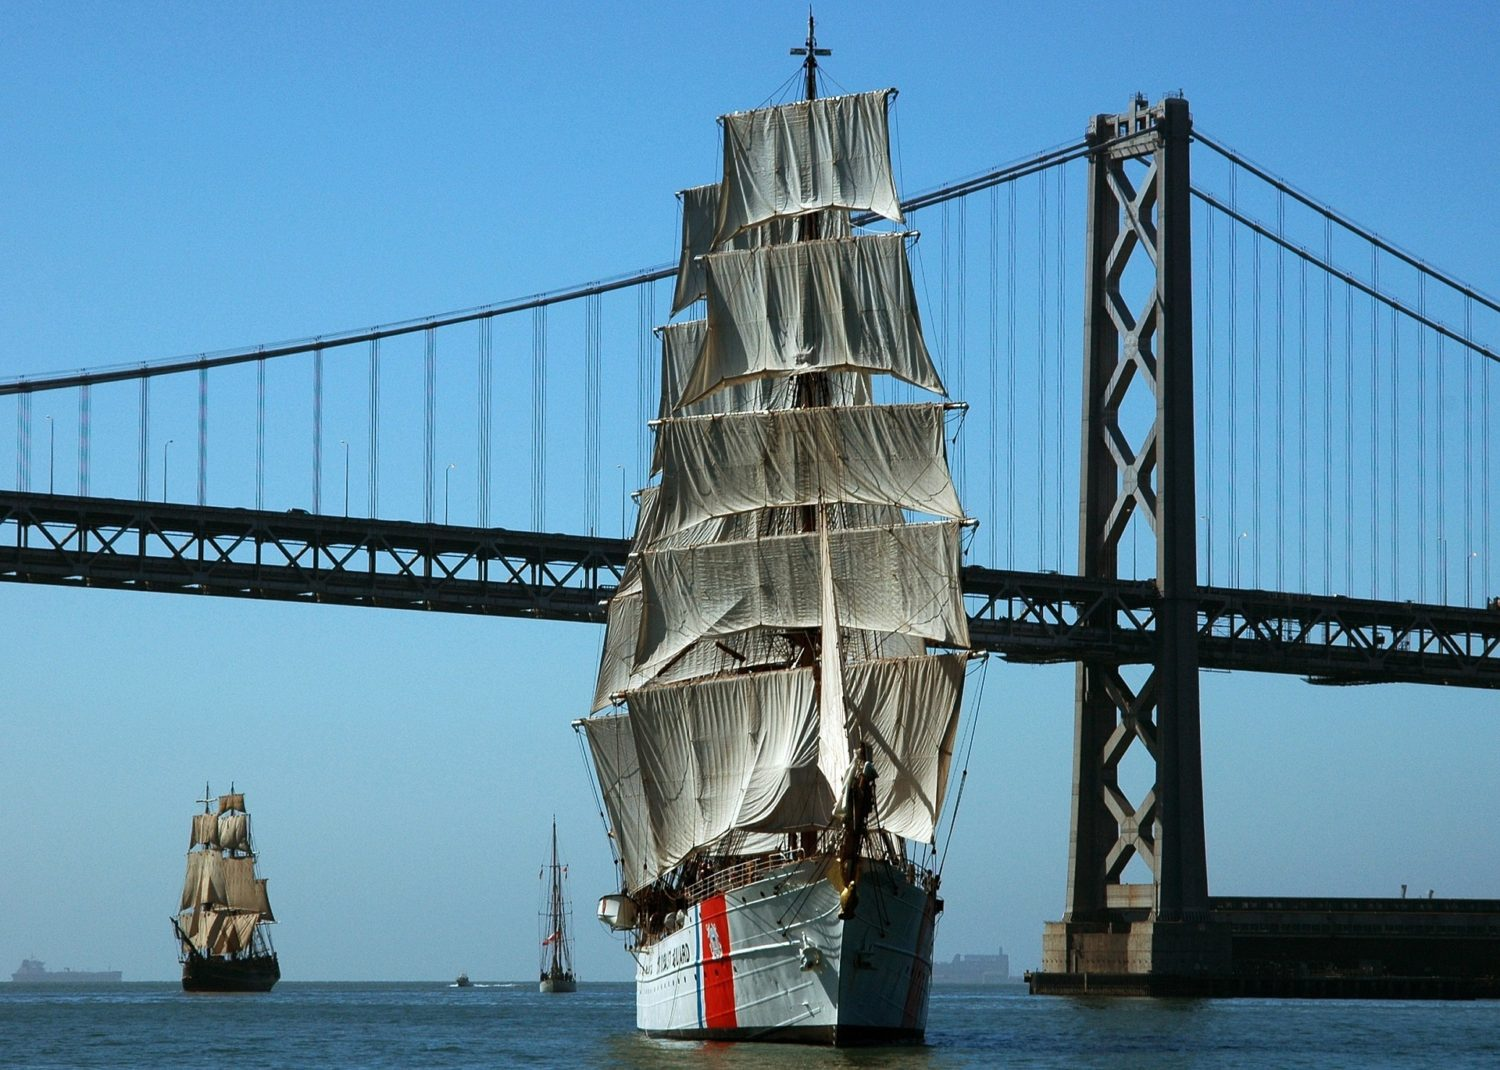 Sailing ships in San Francisco Bay